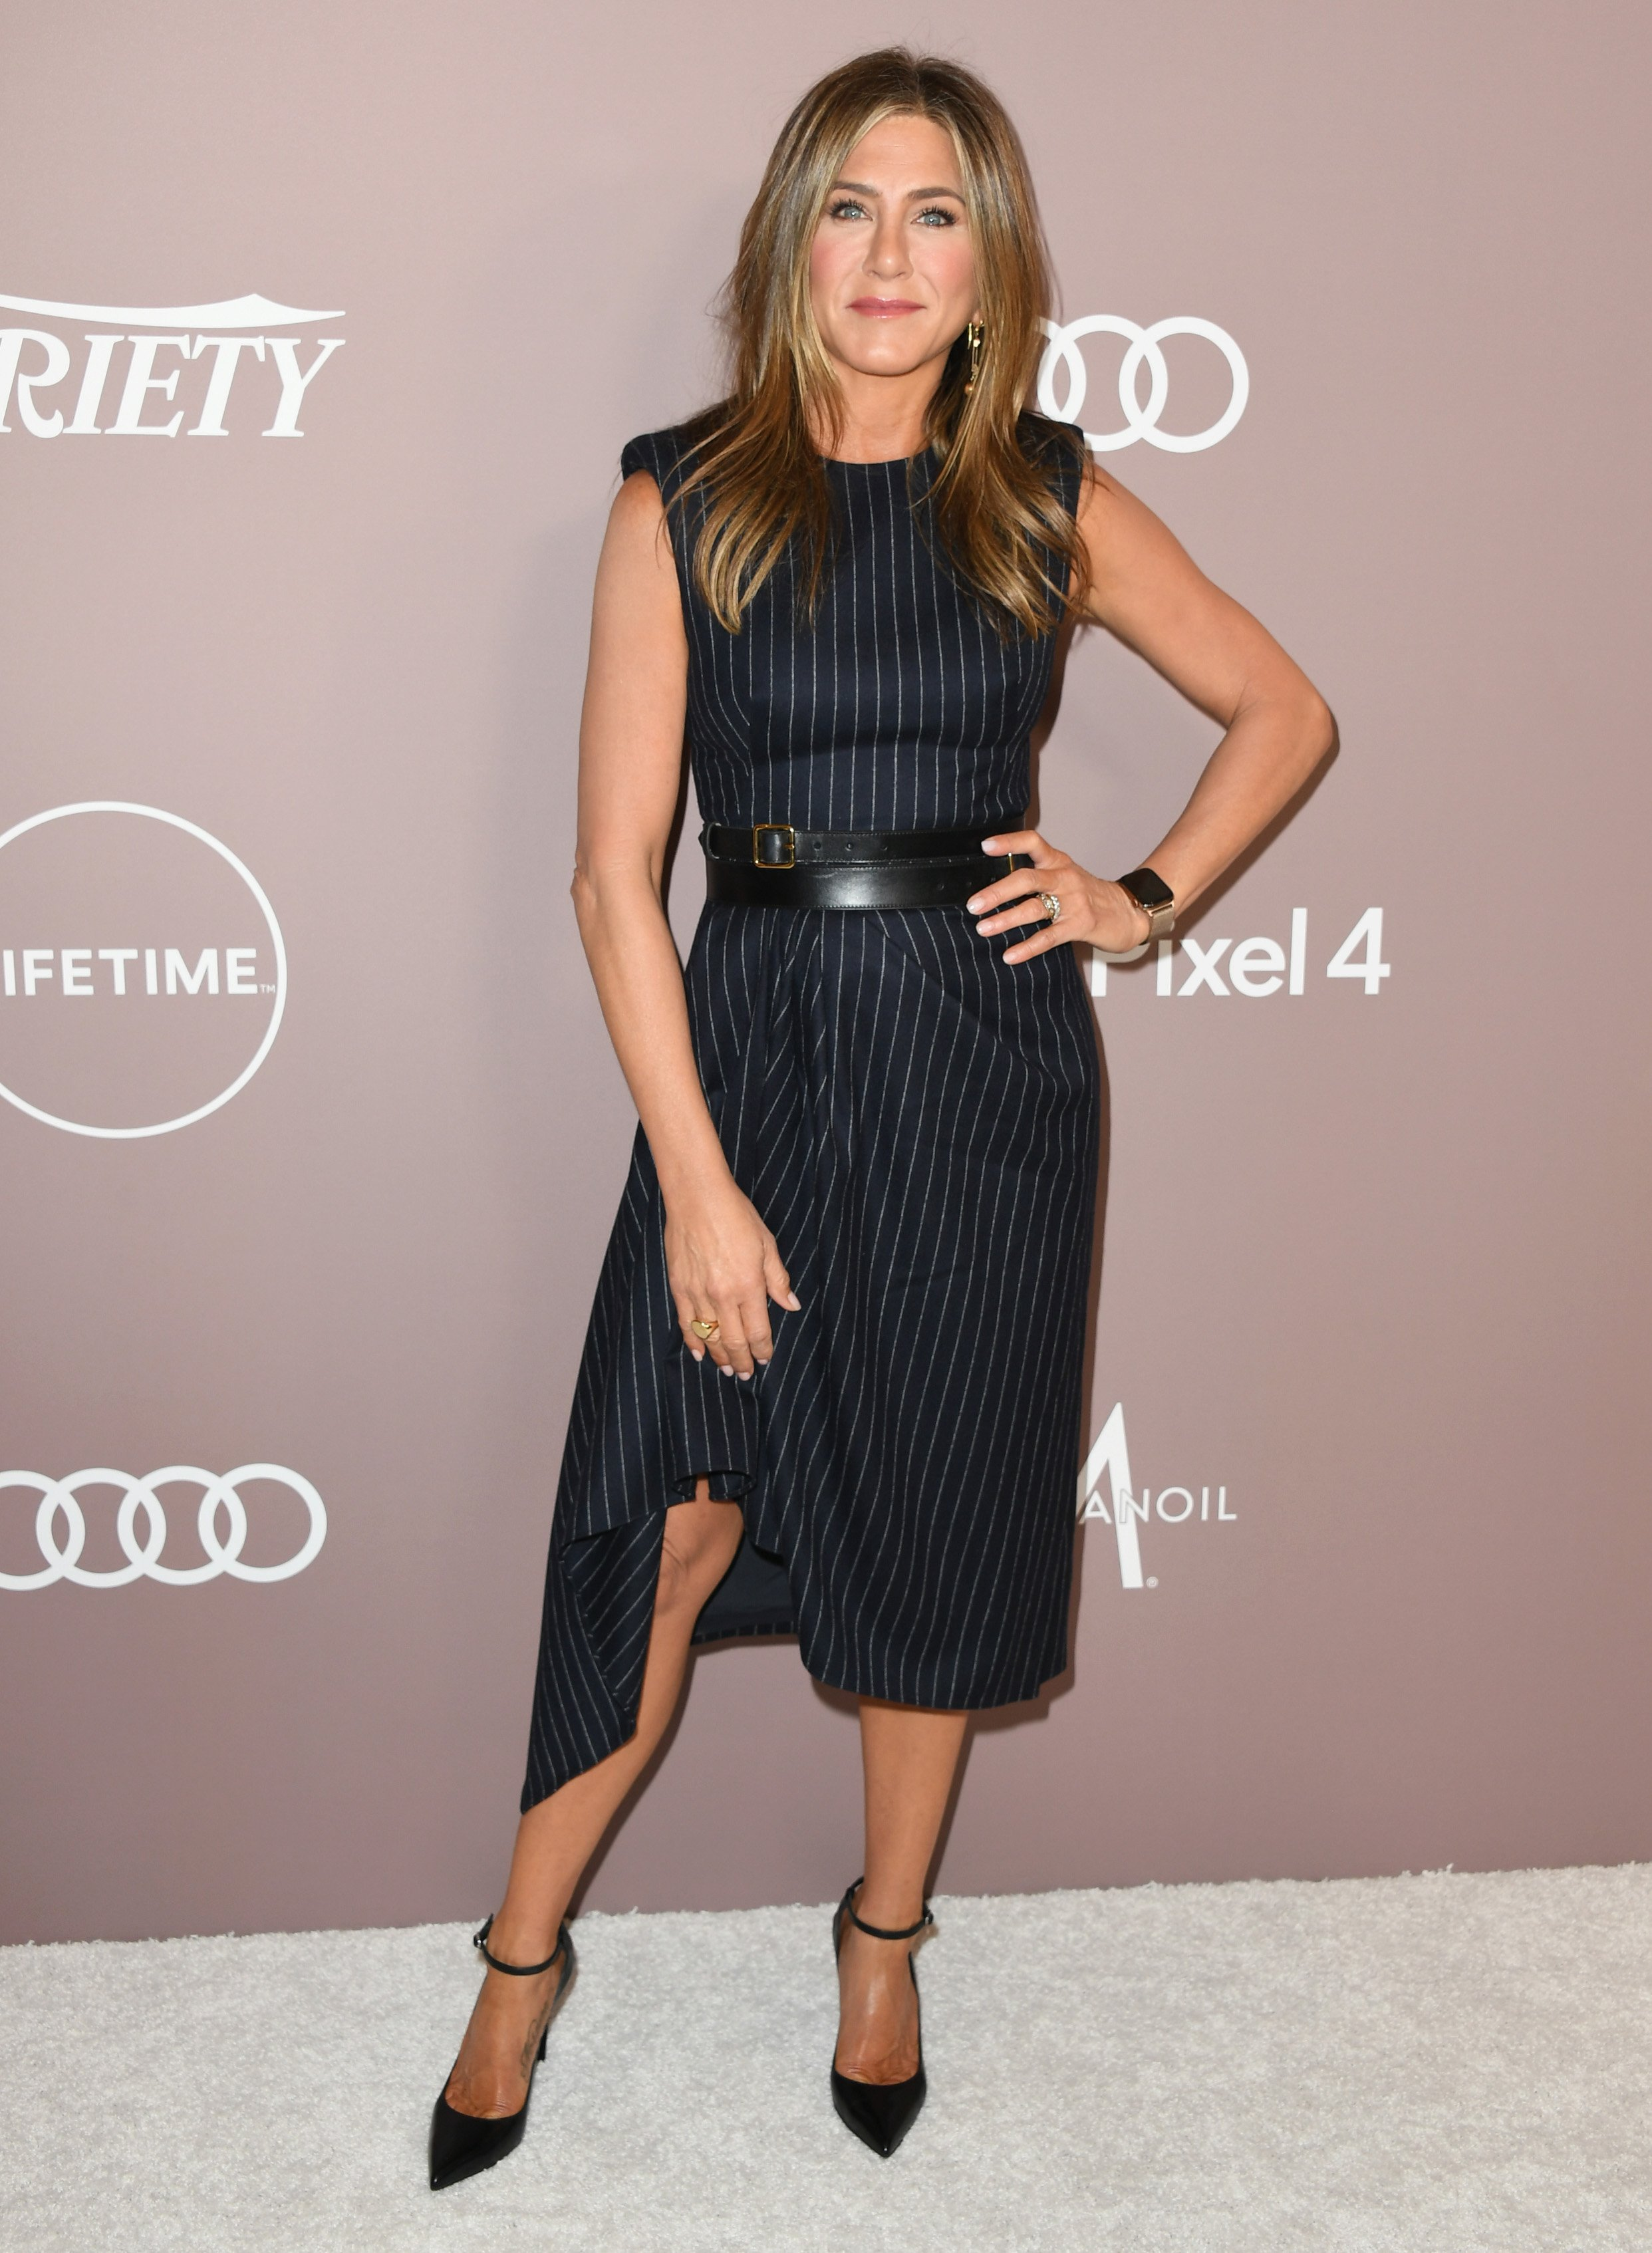 Jennifer Aniston at Variety's 2019 Power of Women luncheon in Los Angeles, California in October 2019.   Photo: Getty Images